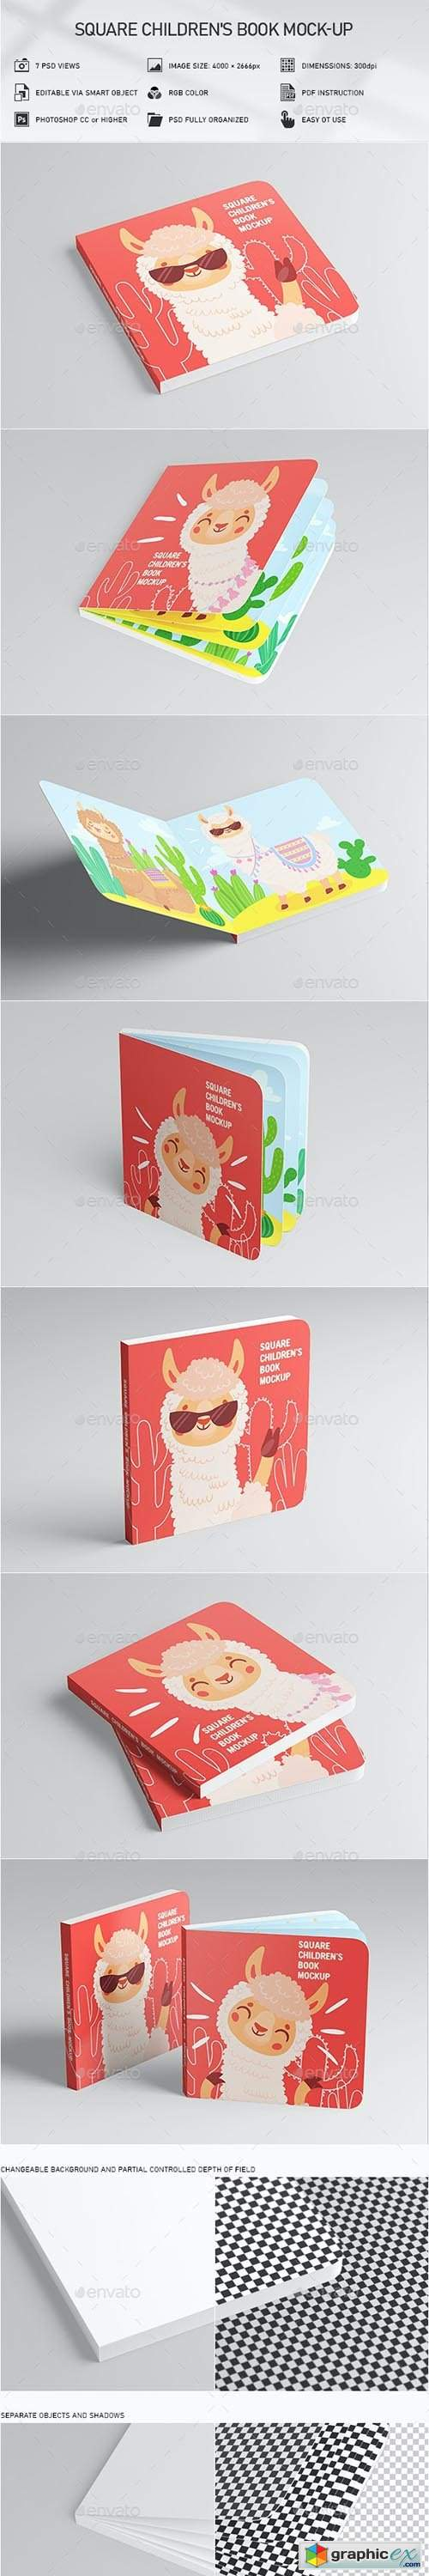 Square Children's Book Mock-Up